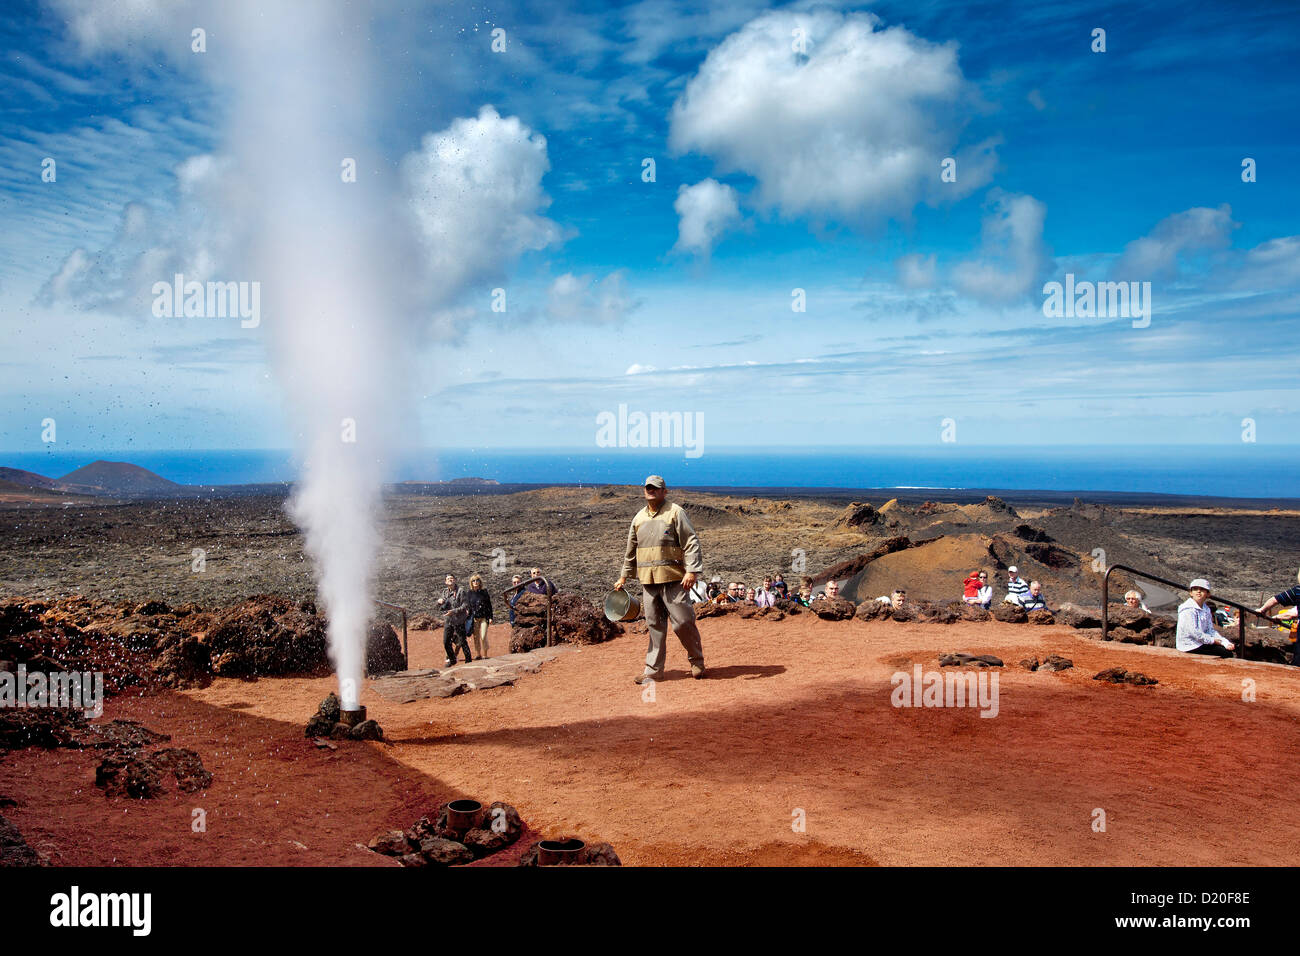 Water explosion, Timanfaya National Park, Lanzarote, Canary Islands, Spain, Europe - Stock Image